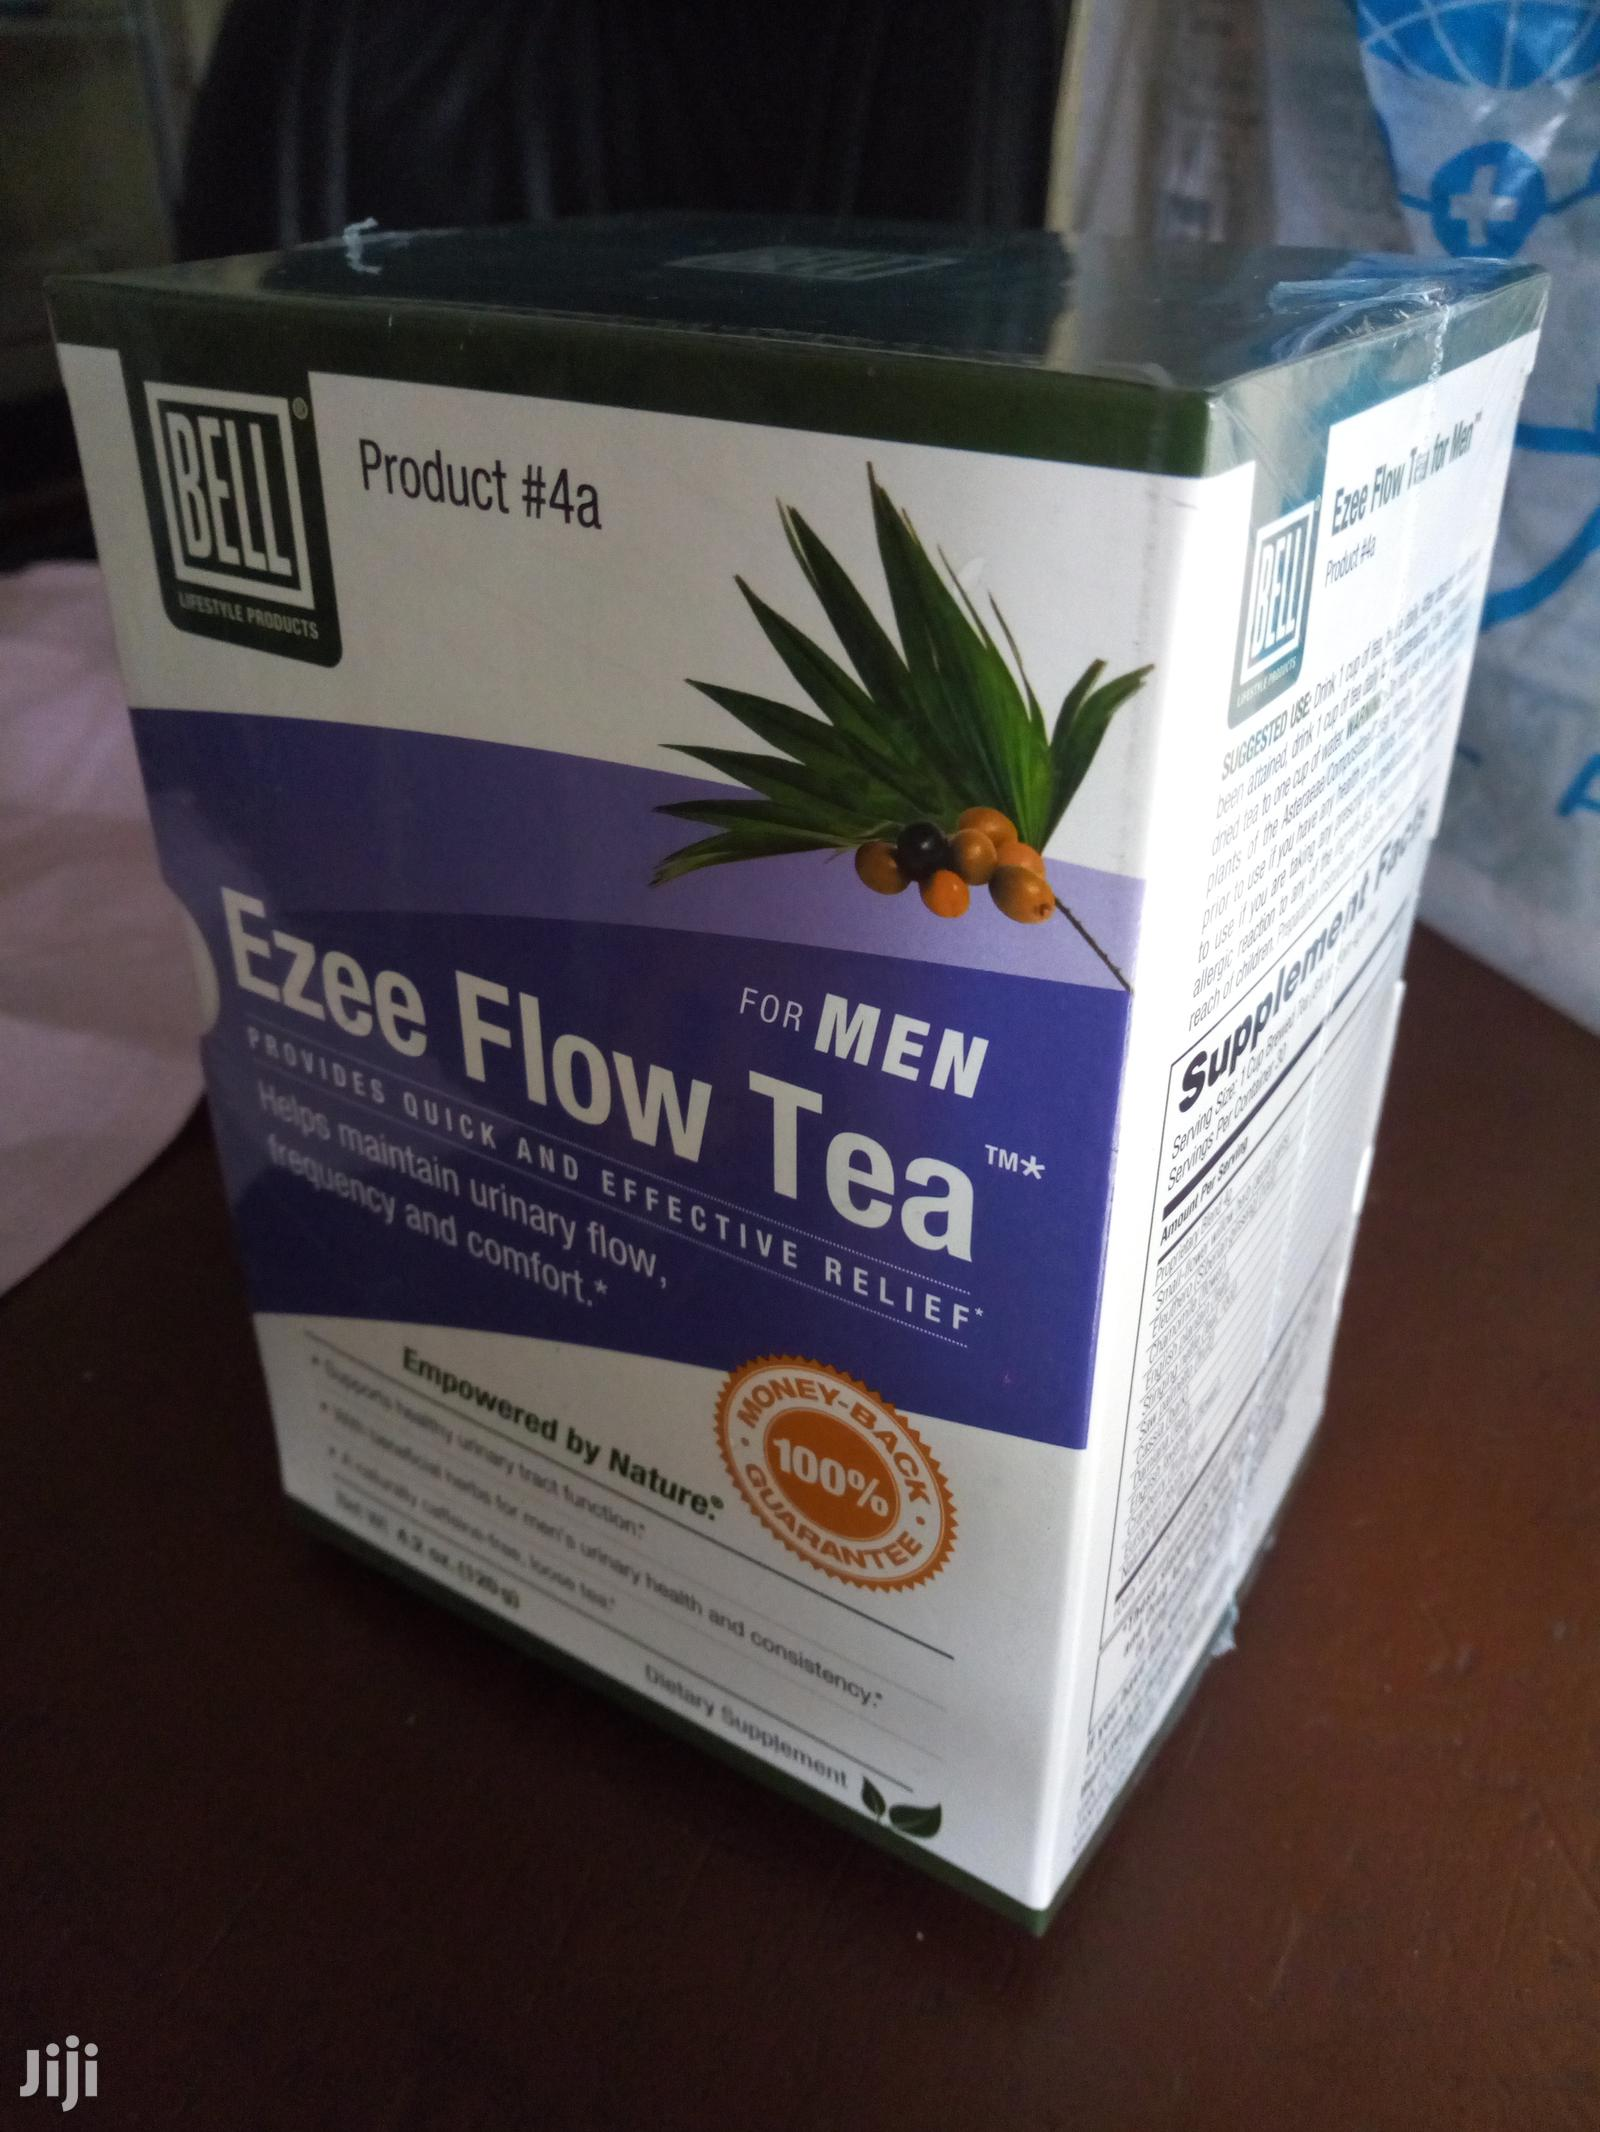 Ezea Flow Tea. Stop Frequent Urination and Prostate Enlargement